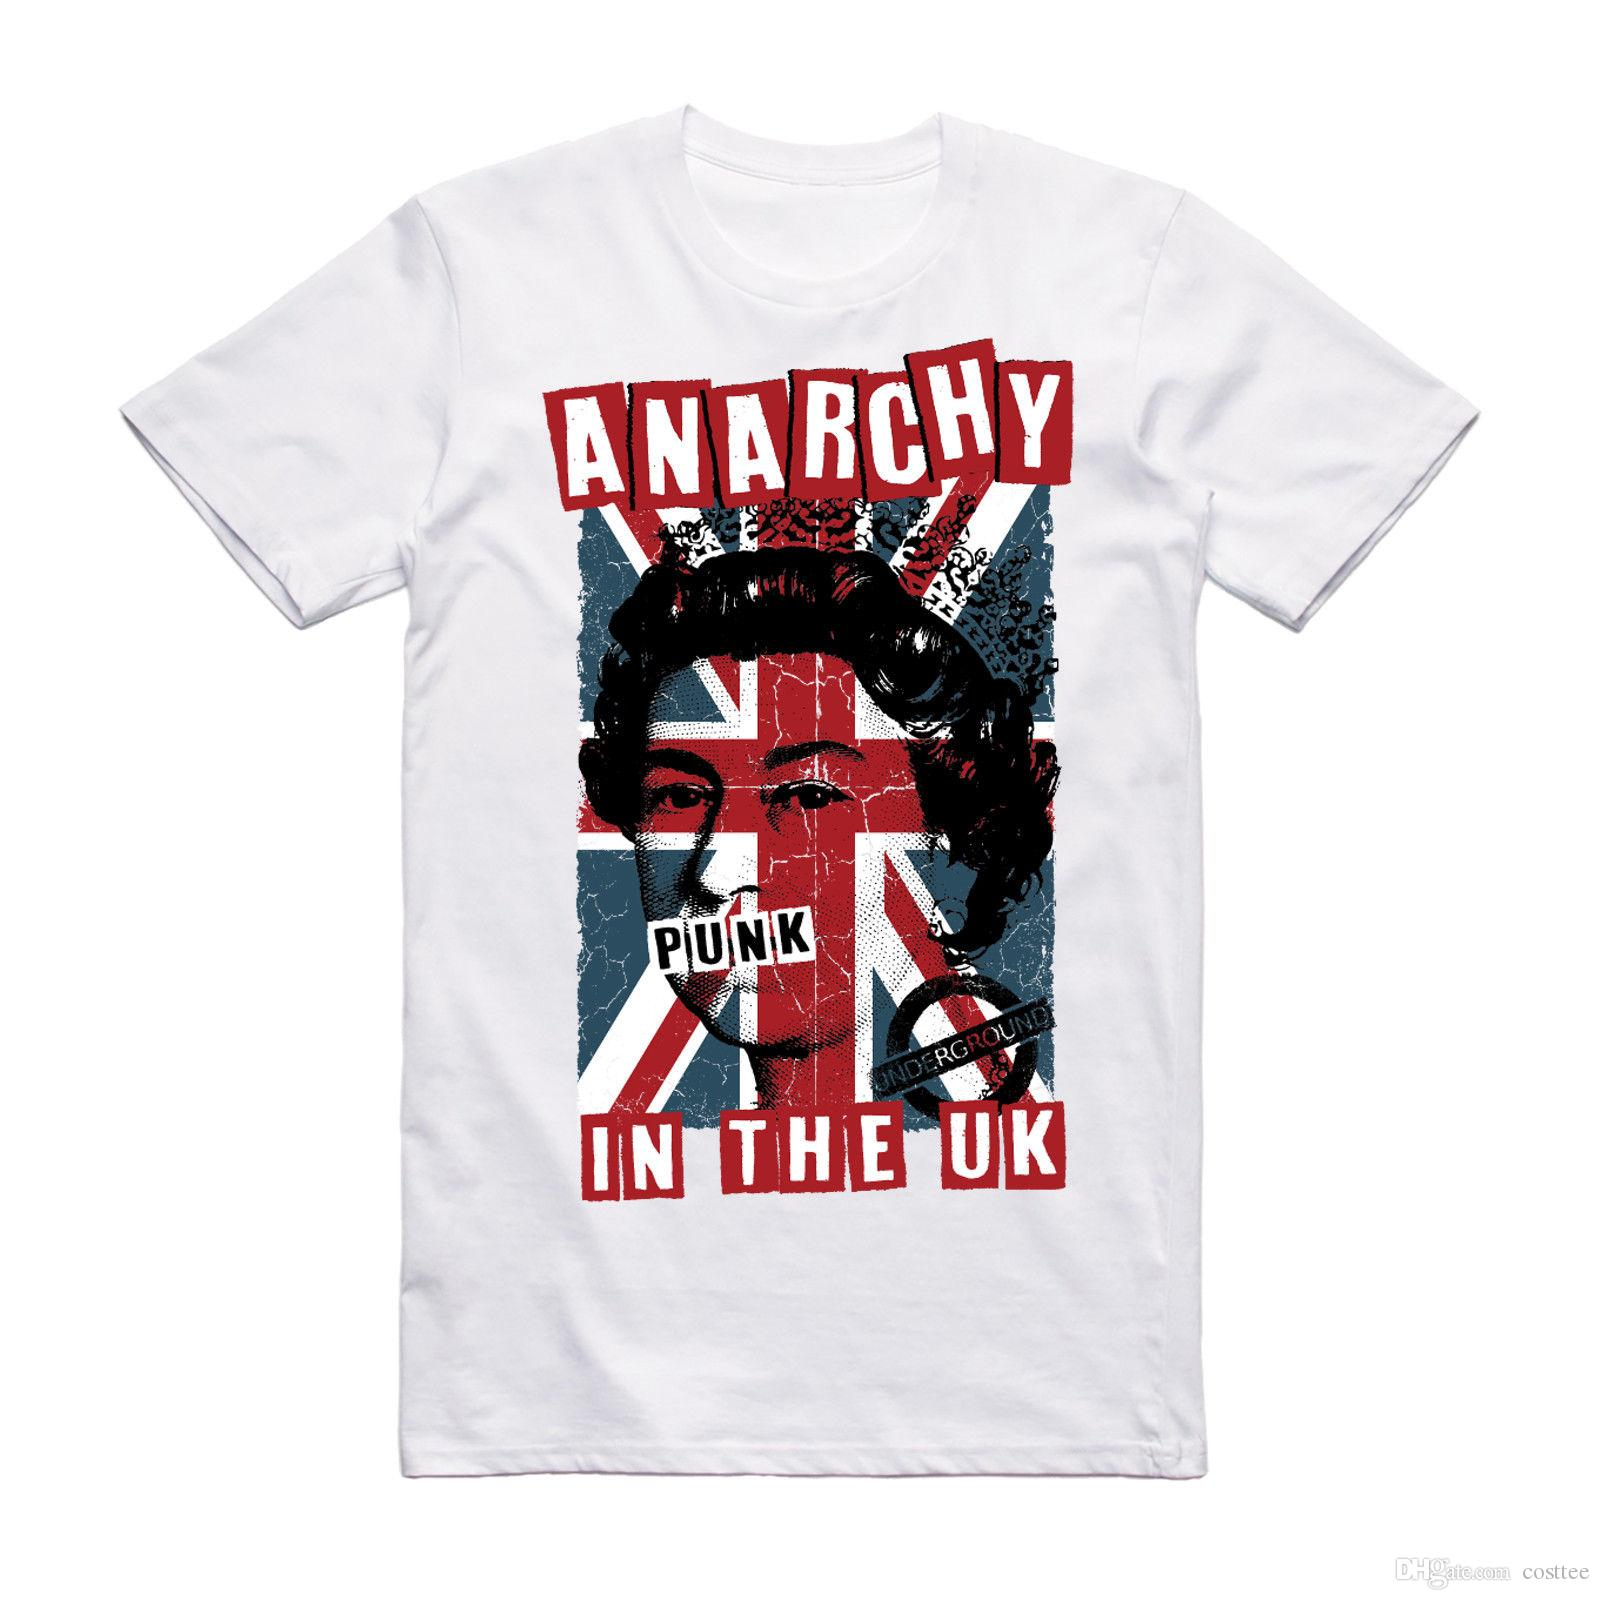 fabf9edc6db Anarchy In The UK Punk T Shirt Sex Pistols Music Tee Rock Festival Clothing  T Shirts Shopping Really Funny T Shirts From Costtee